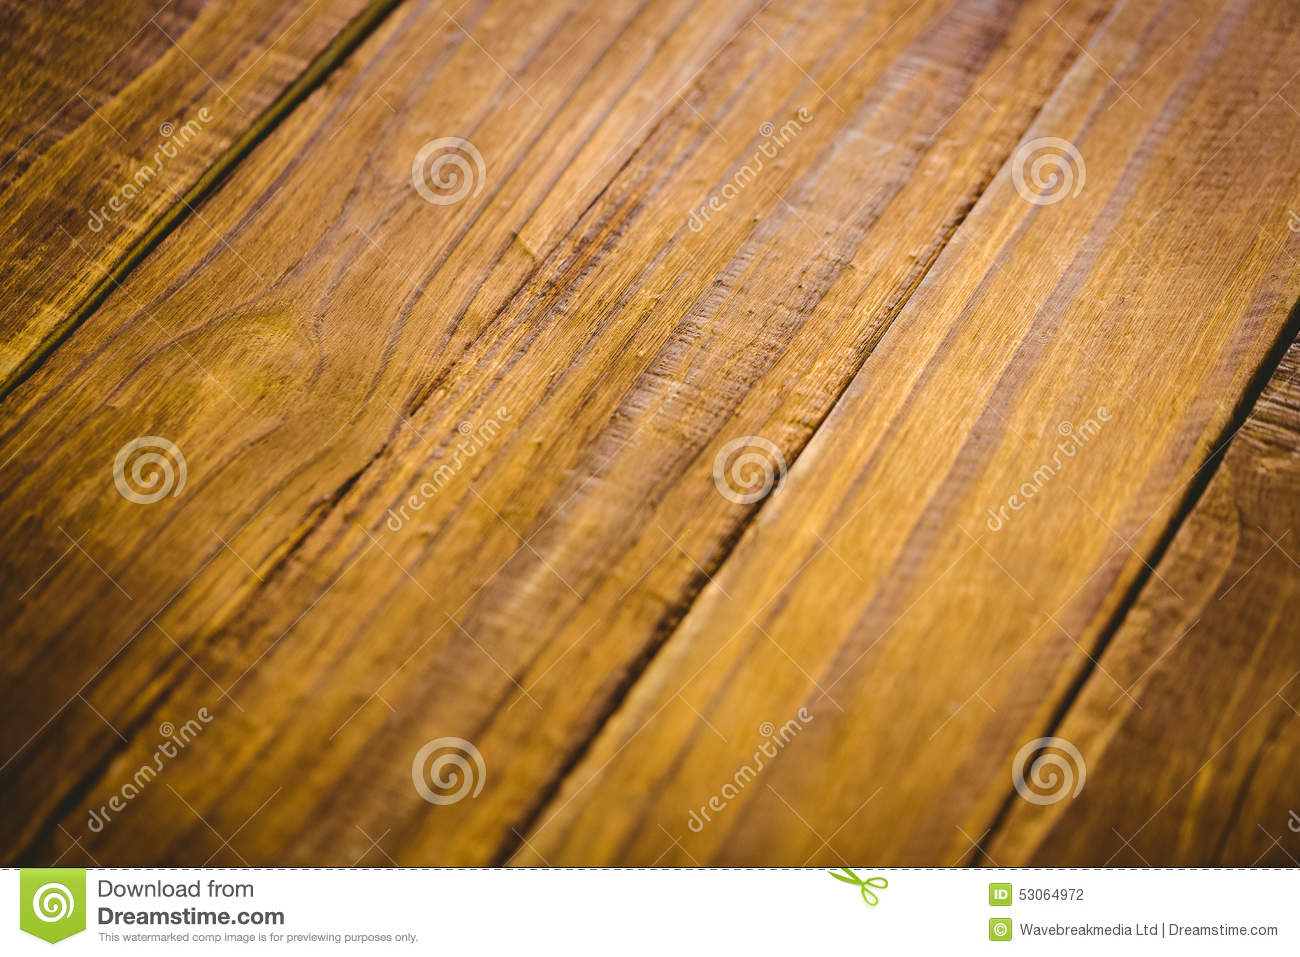 Wooden table in close up